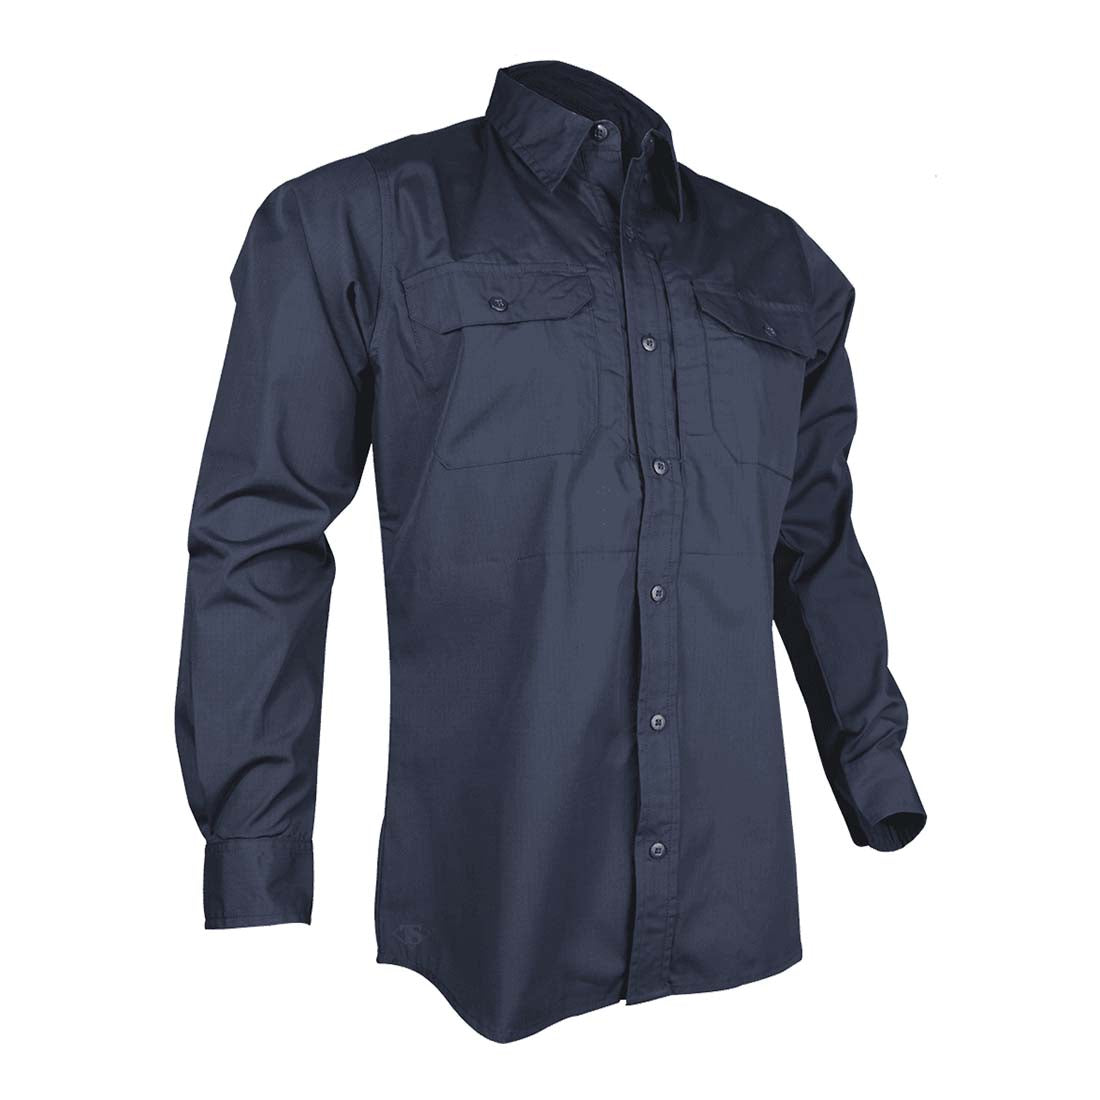 Tru-Spec 1347 Navy Men's Long Sleeve Dress Shirt